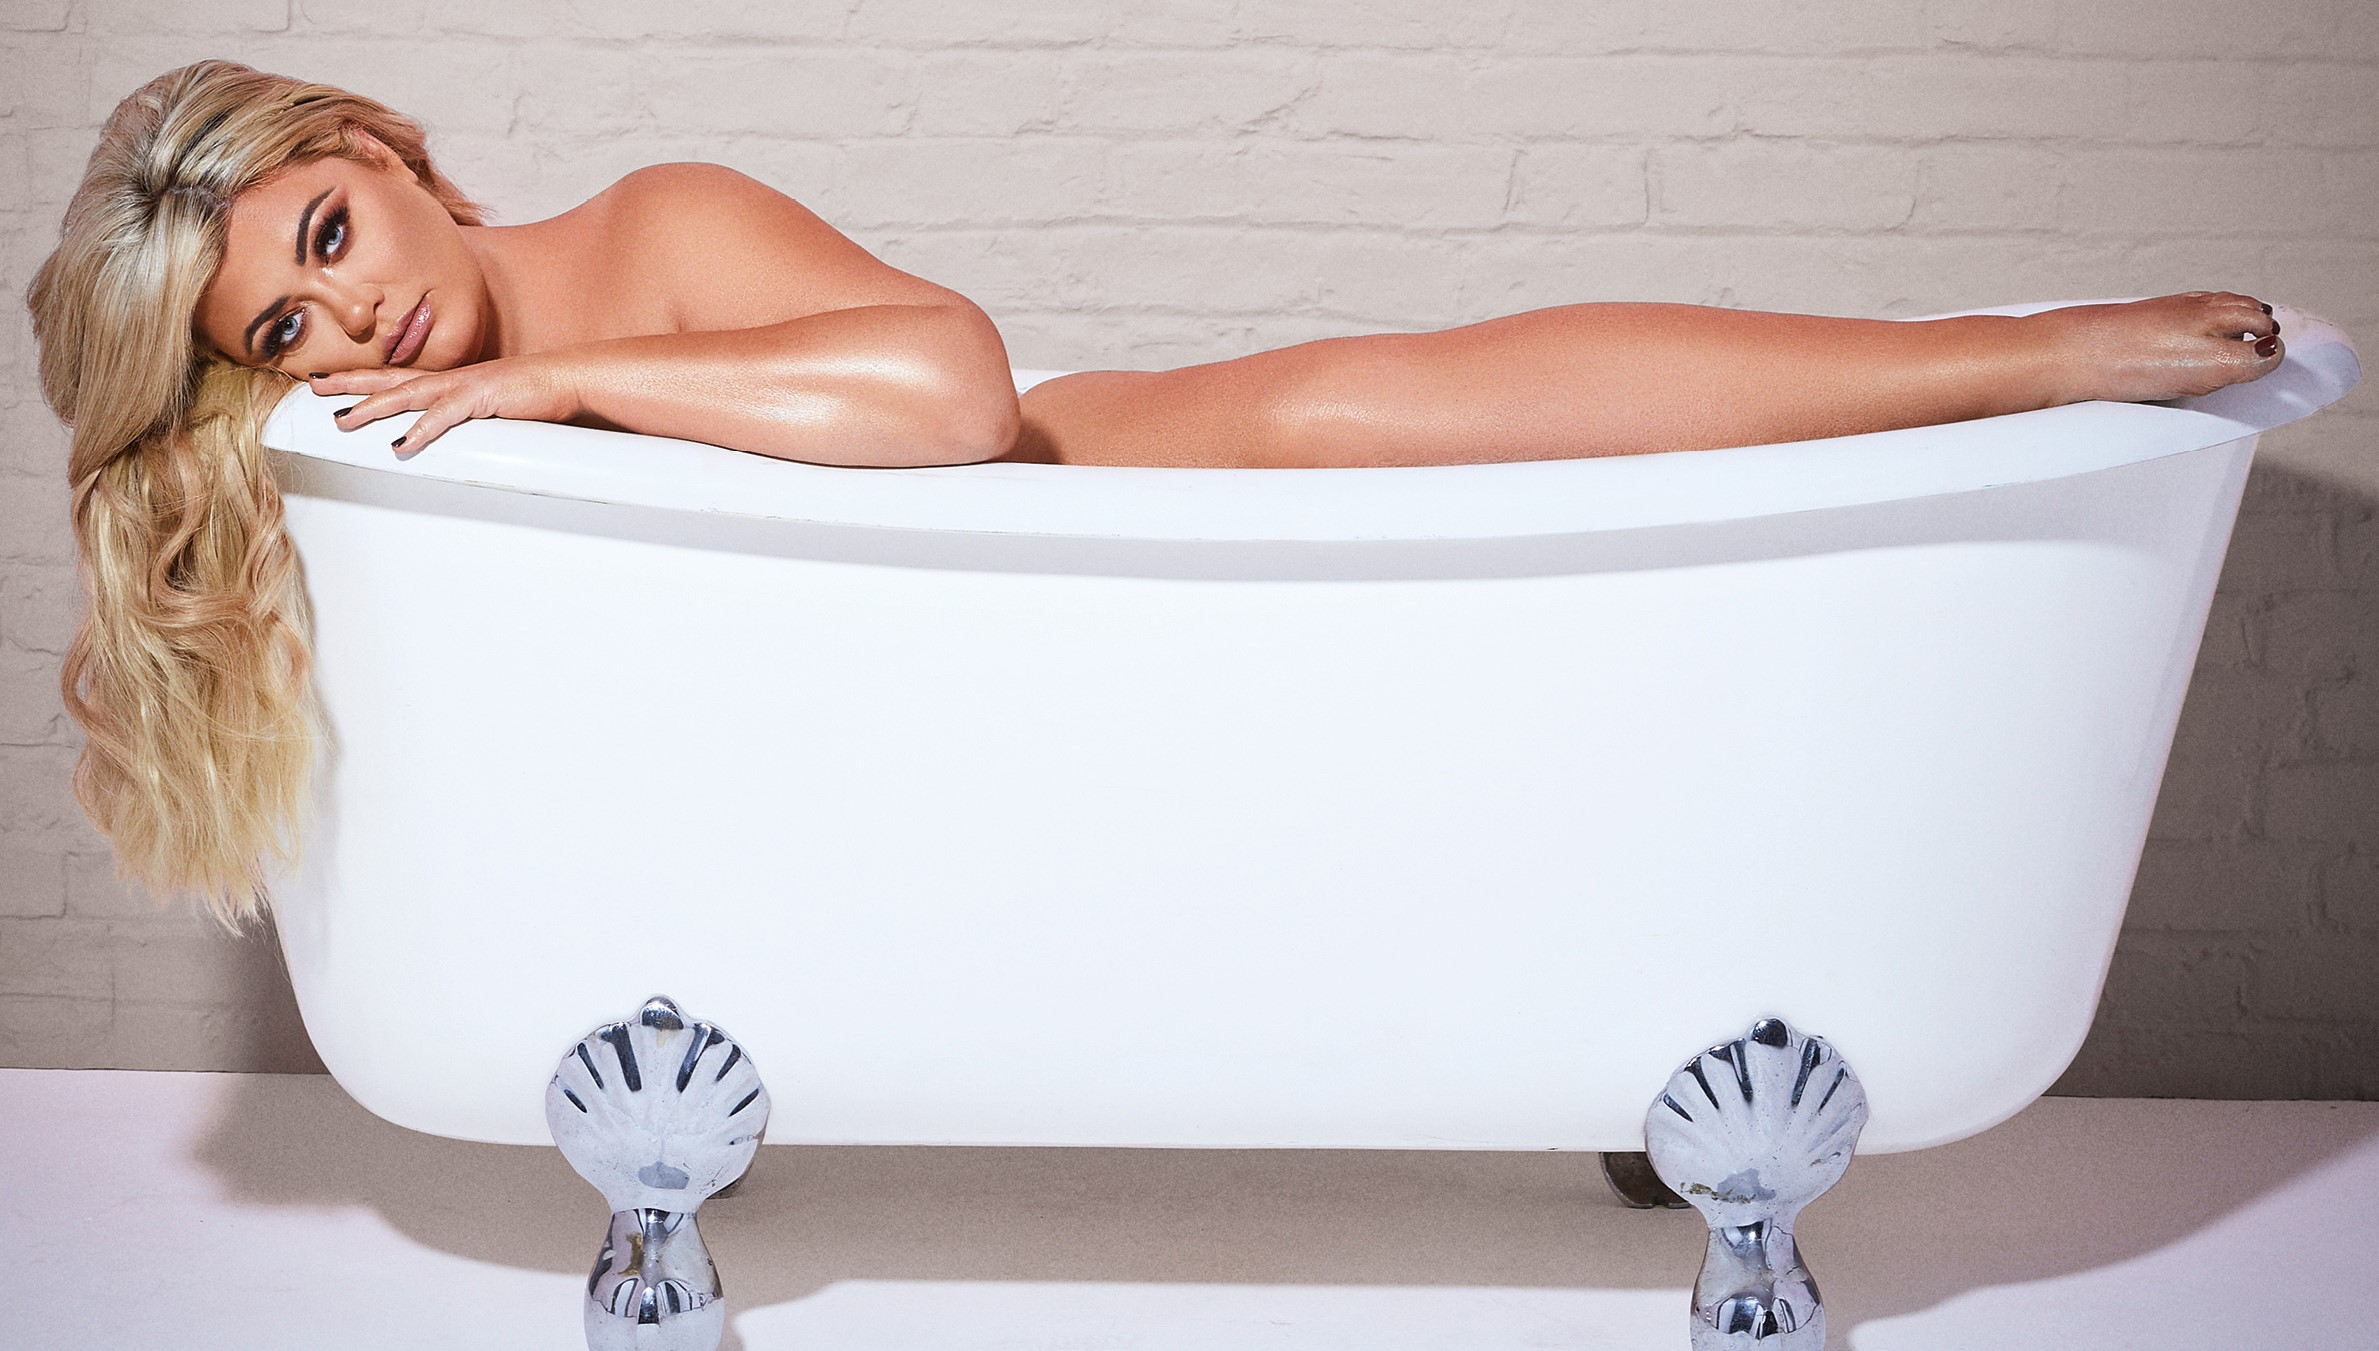 Gemma Collins strips off as she poses naked for PETA campaign